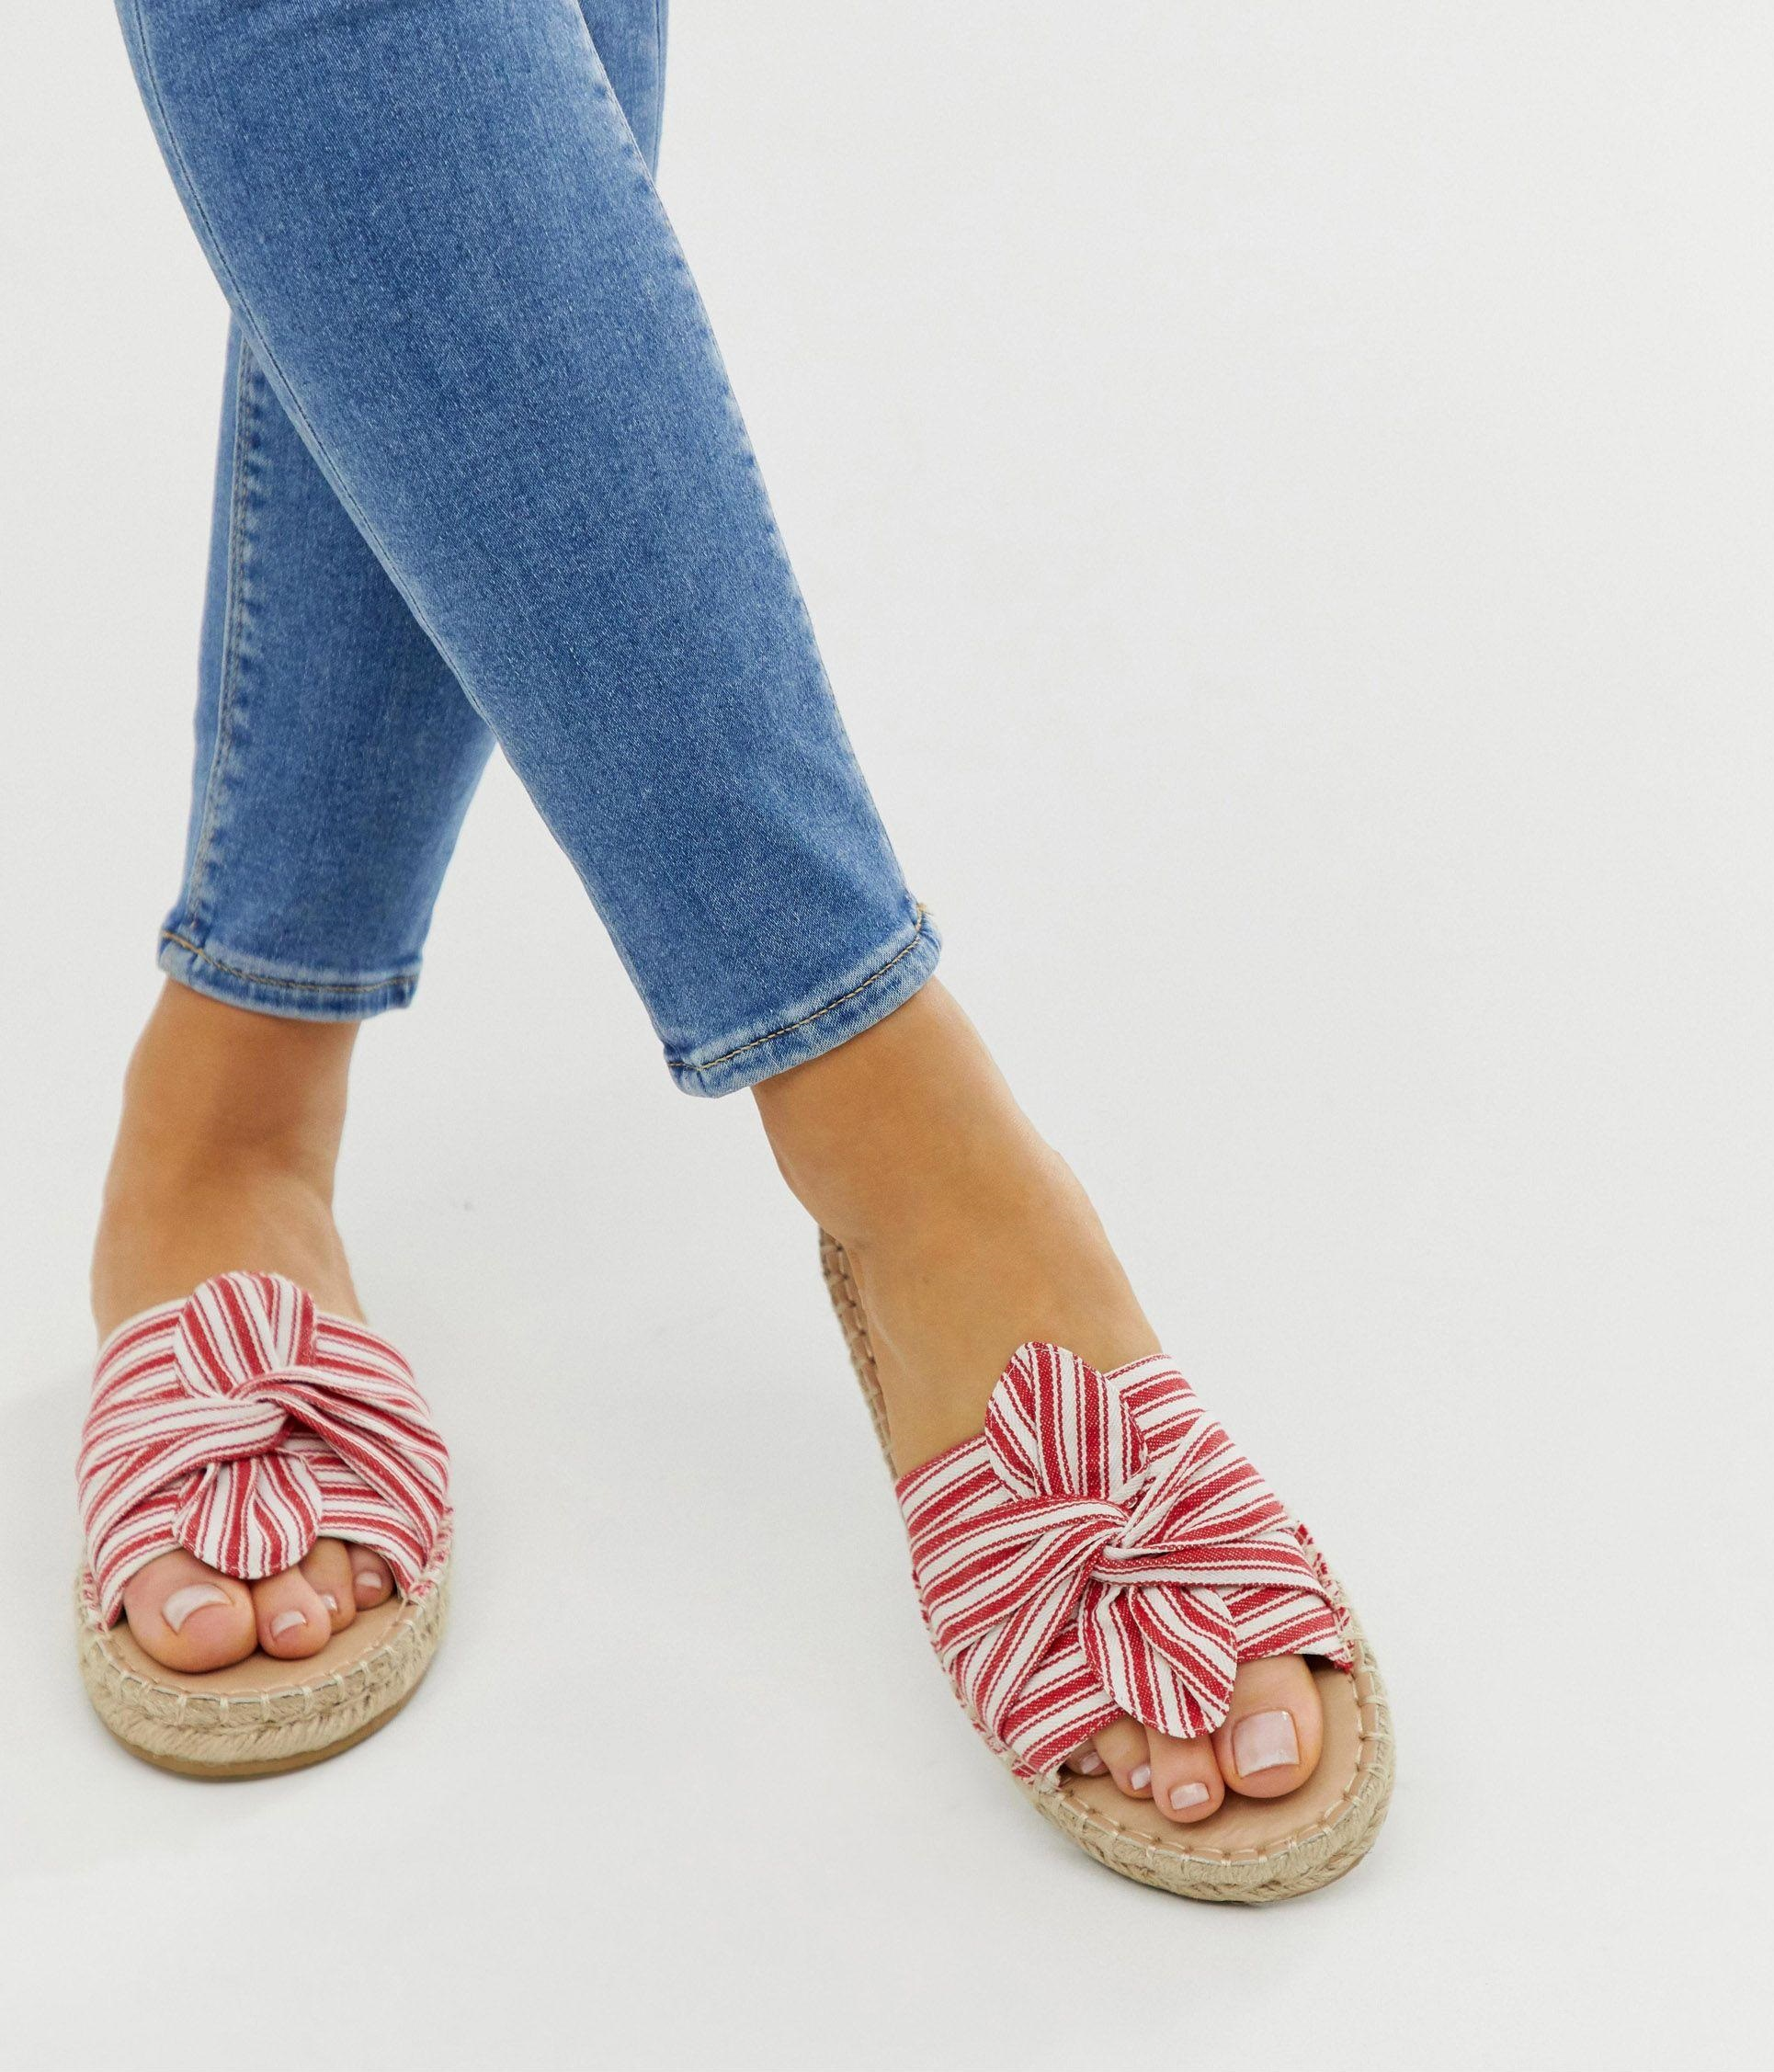 Not-the-regular-sandals. 60+ Hottest Shoe Fashion Trends in 2021